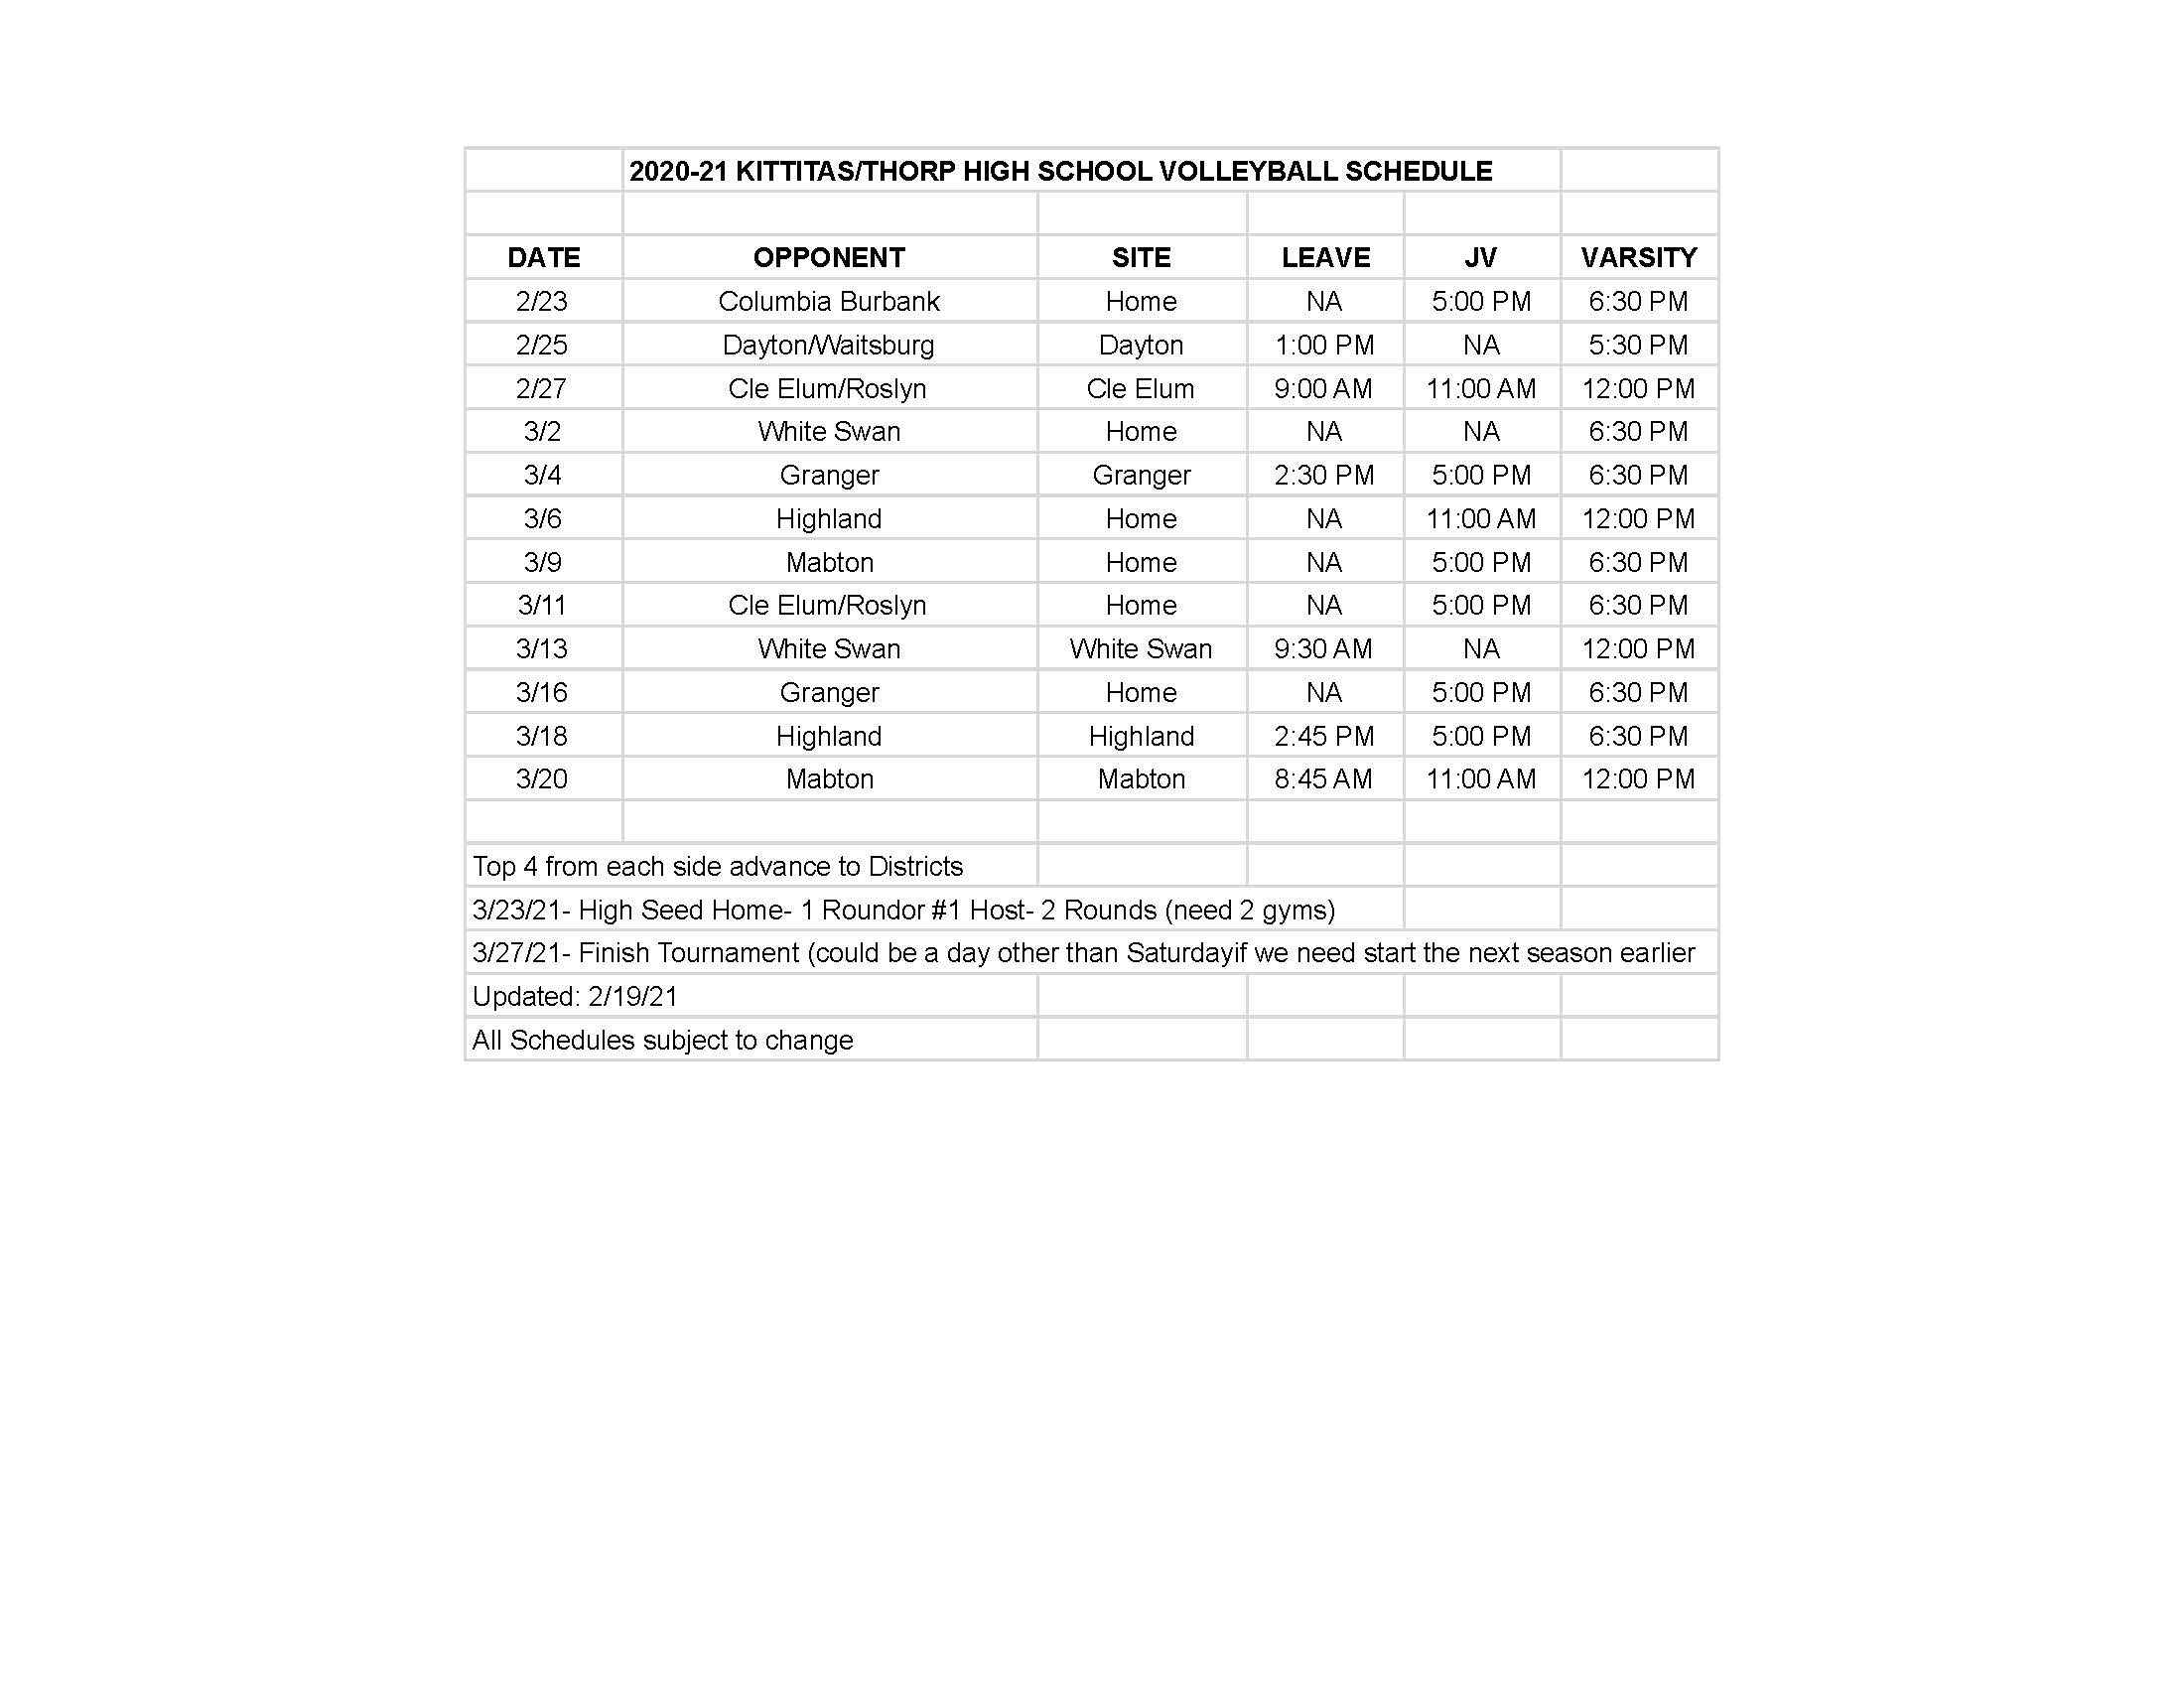 Revised HS Volleyball Schedule